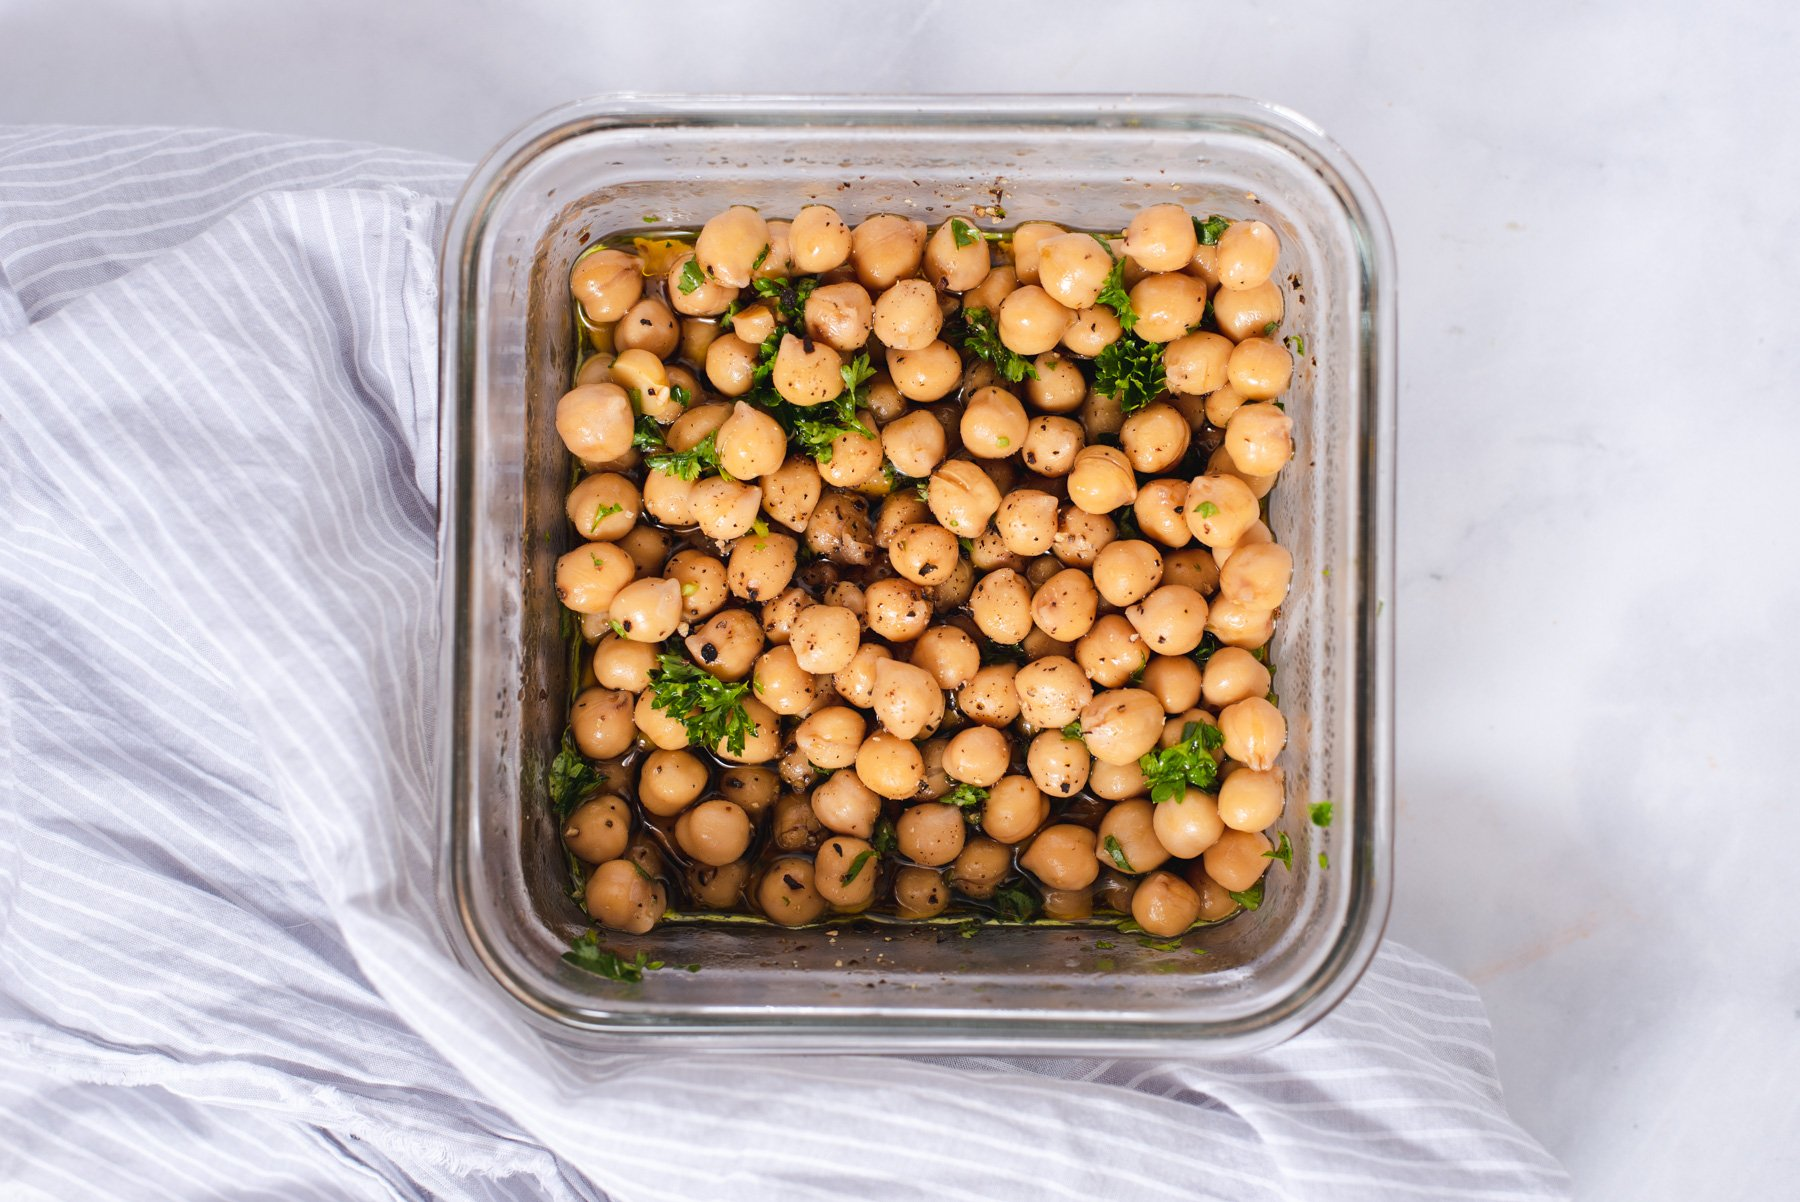 Square glass container filled with chickpeas and parsley